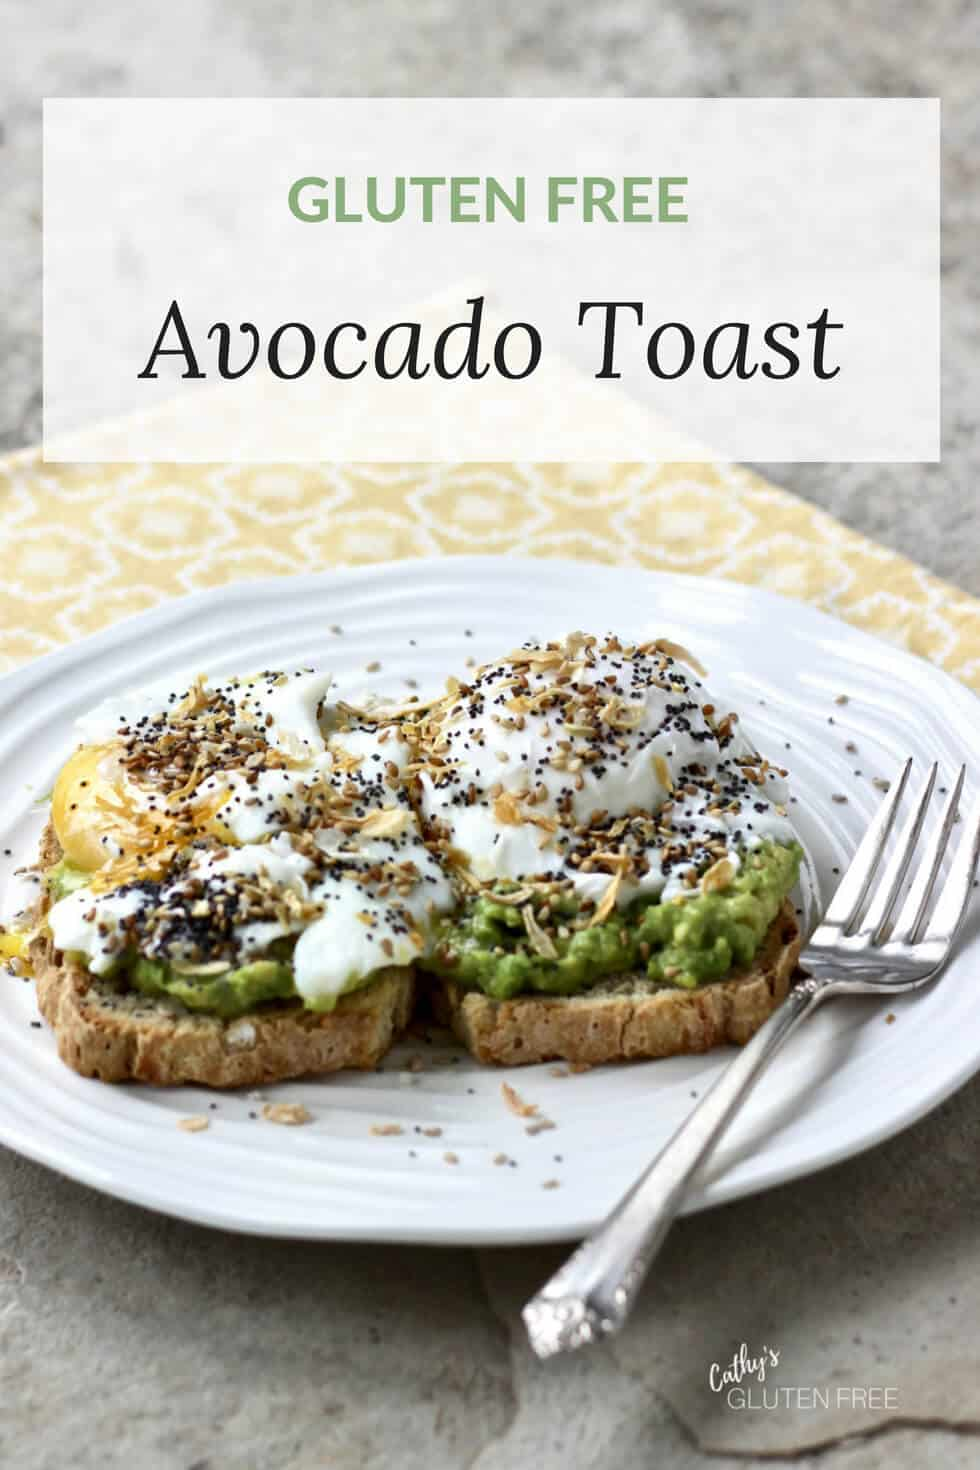 Avocado Toast with Poached Egg #glutenfree #lunch #brunch #egg